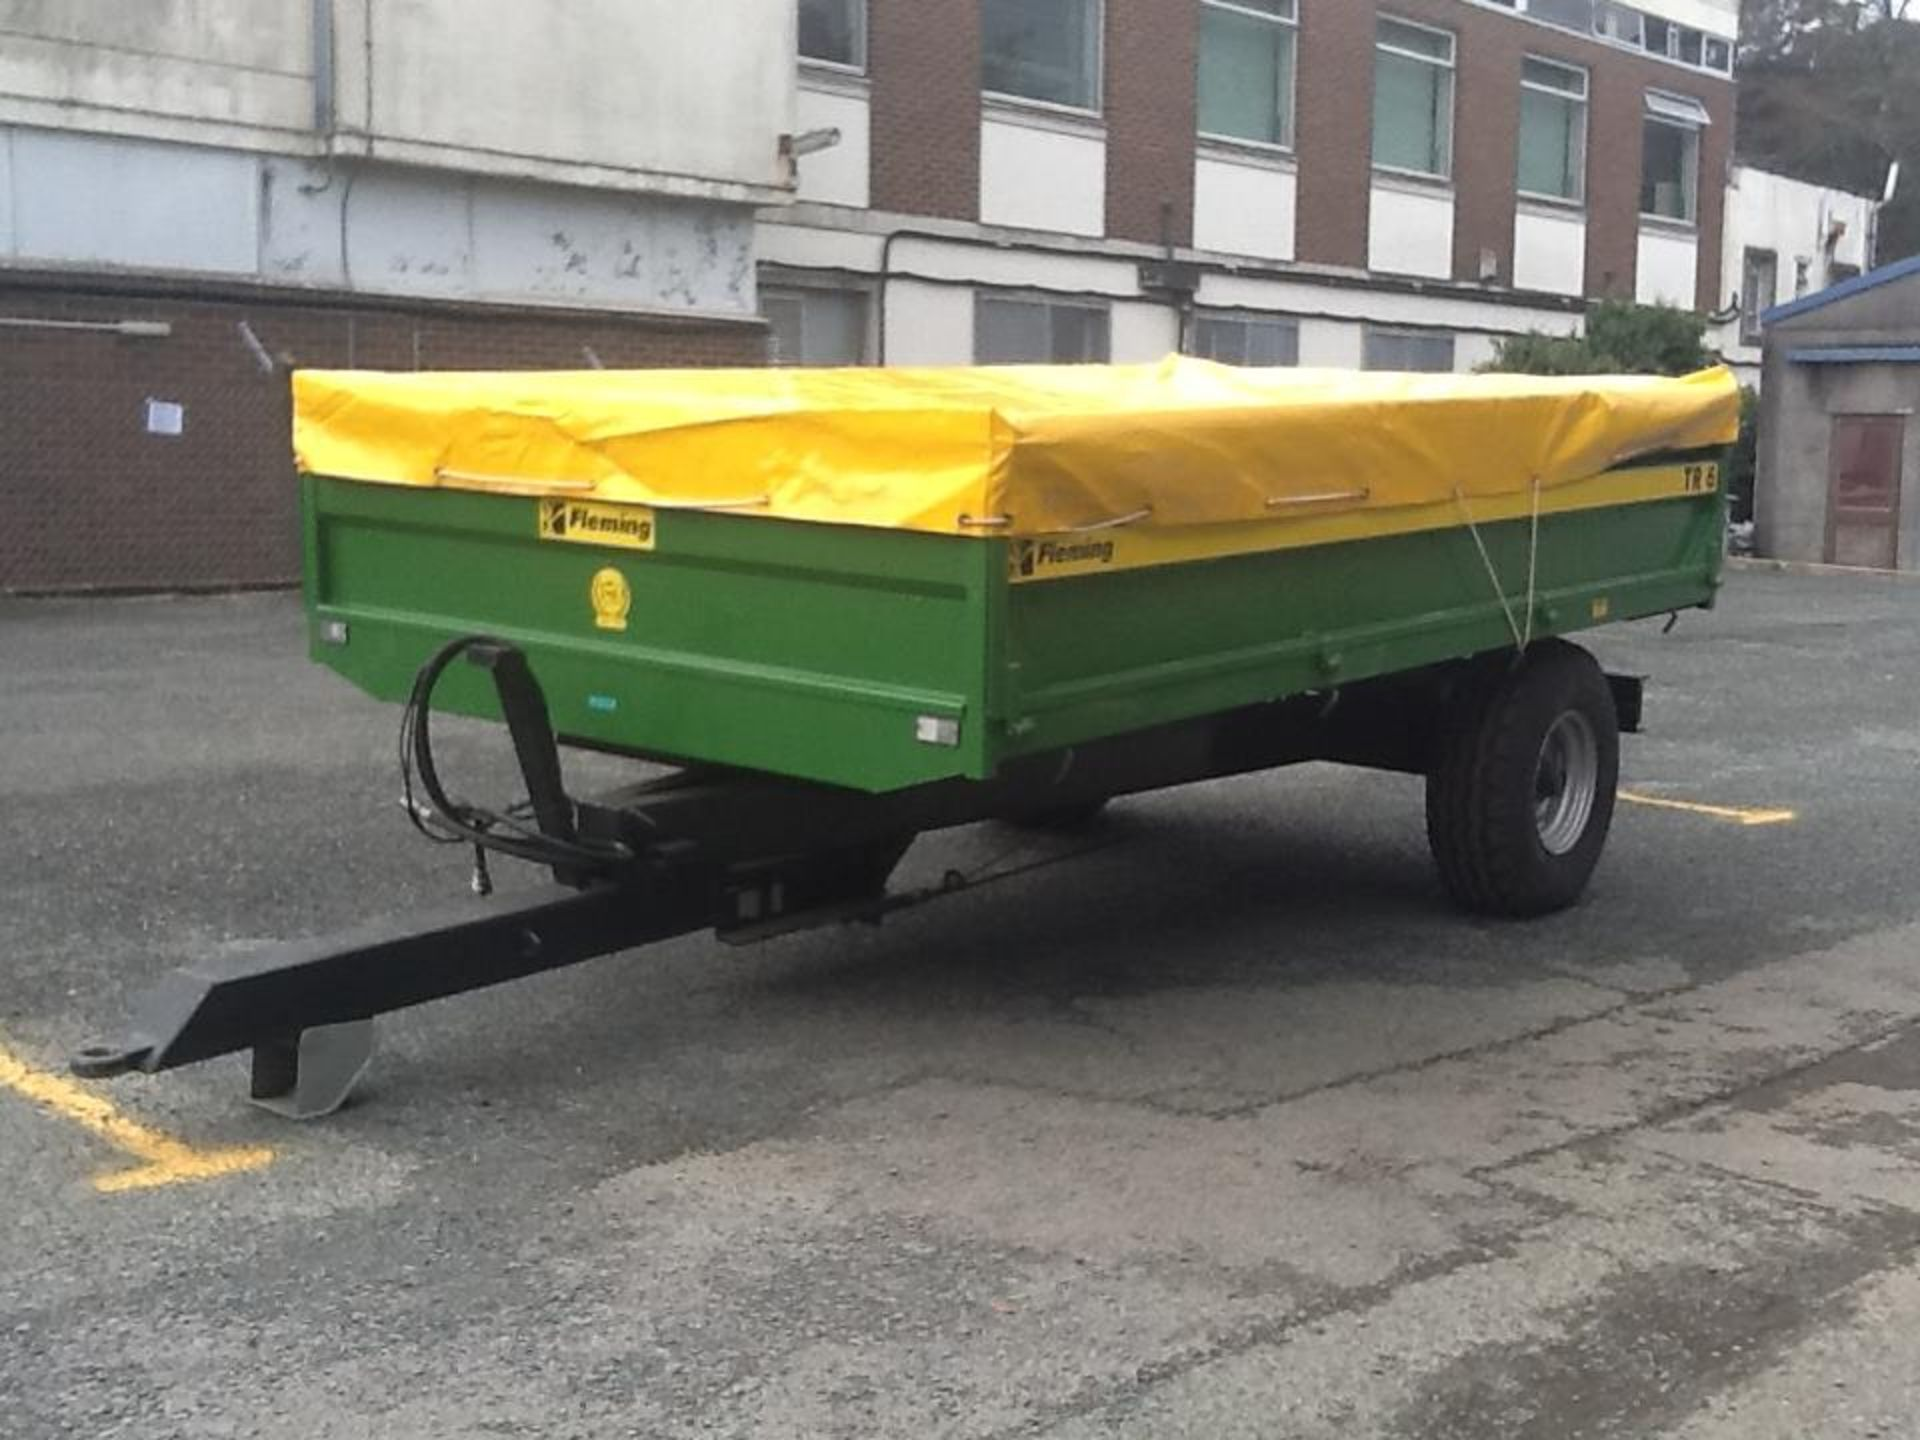 FLEMING 6TR TIPPING TRAILER (2016). HYD BRAKES, REMOVABLE SIDES. LOCATED TAVISTOCK PL19 8DH - Image 5 of 5